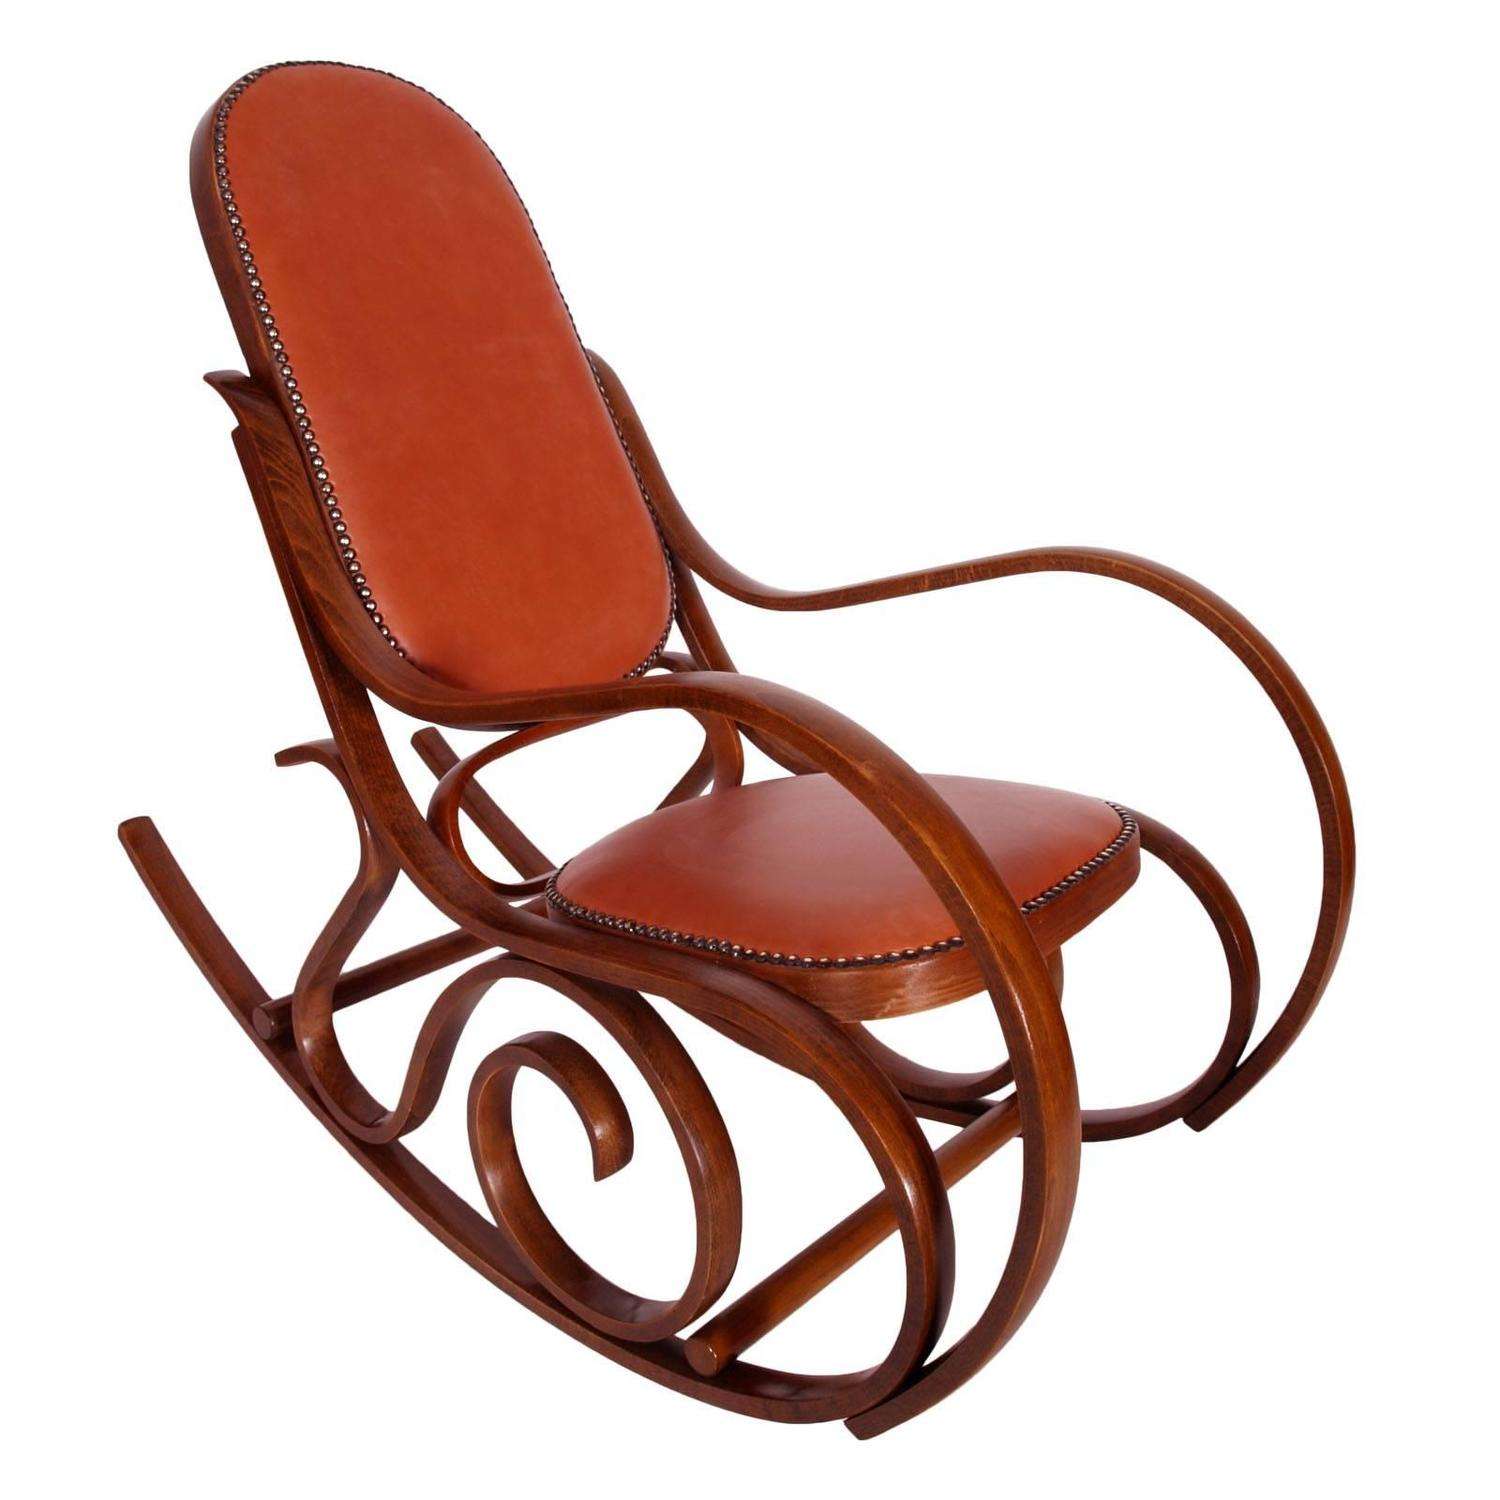 Bentwood rocking chair - Early 20th Century Art Nouveau Thonet Rocking Chair In Steam Bent Beechwood For Sale At 1stdibs